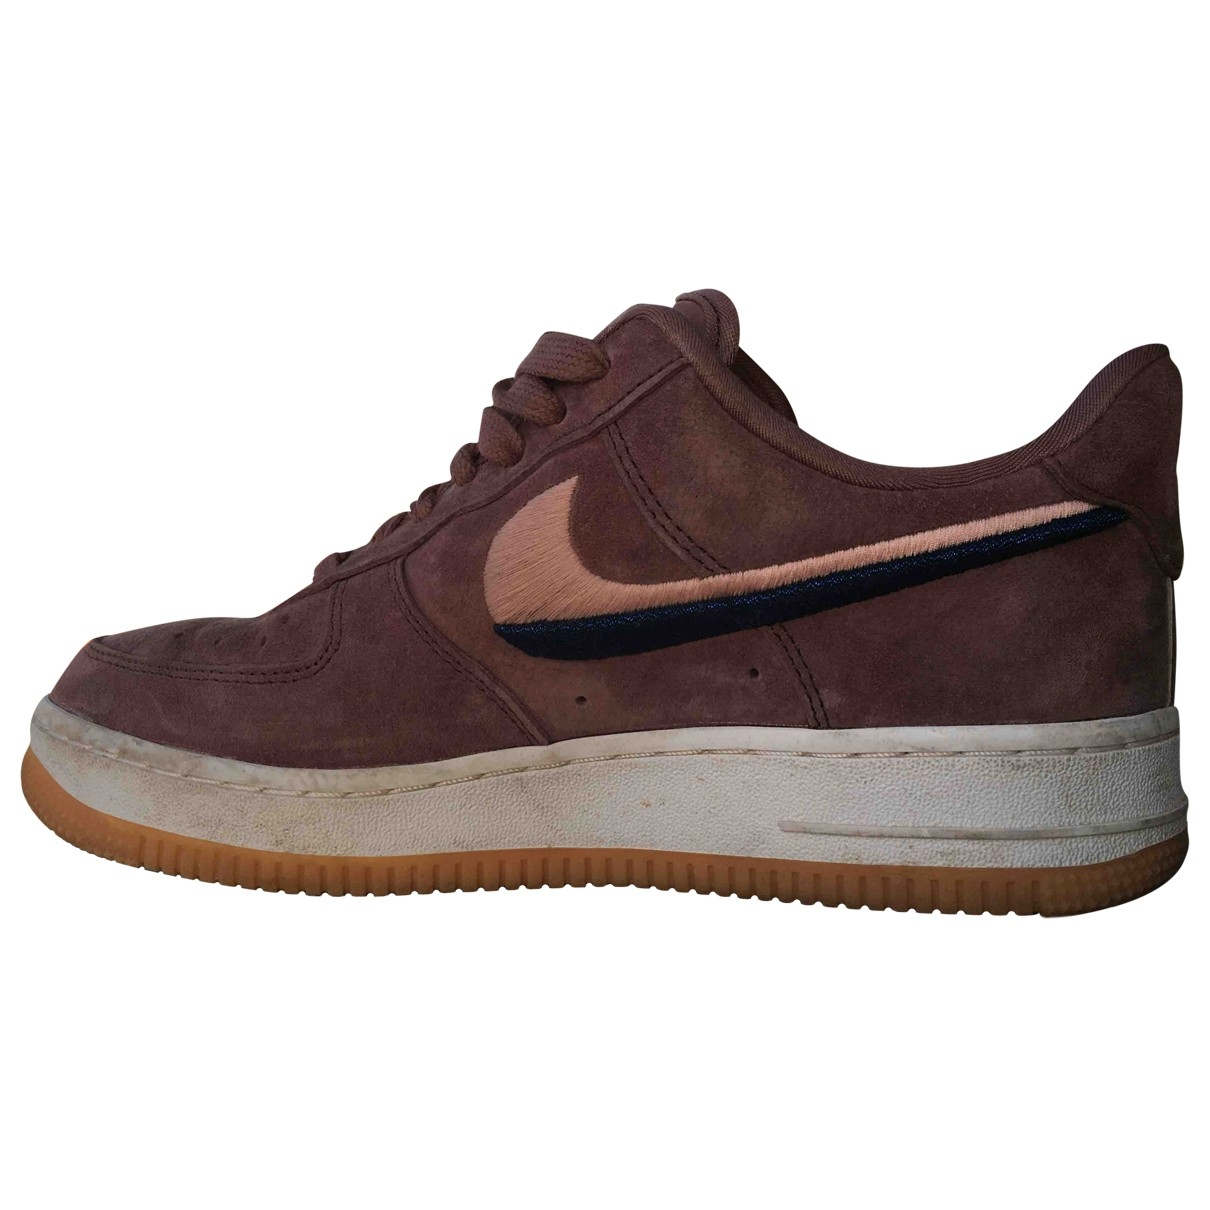 Nike Air Force 1 Burgundy Suede Trainers for Women 38 EU